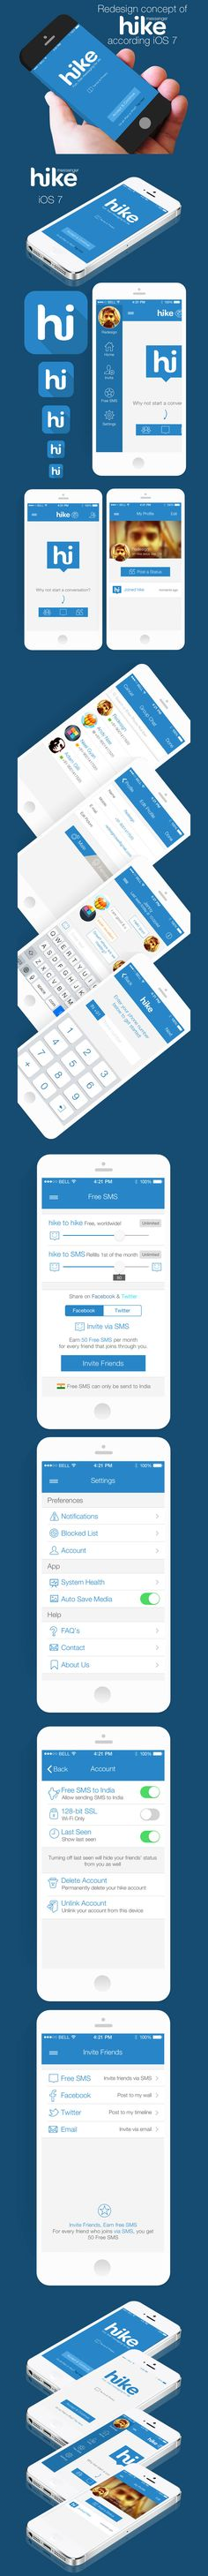 Redesign concept of hike messenger according iOS7